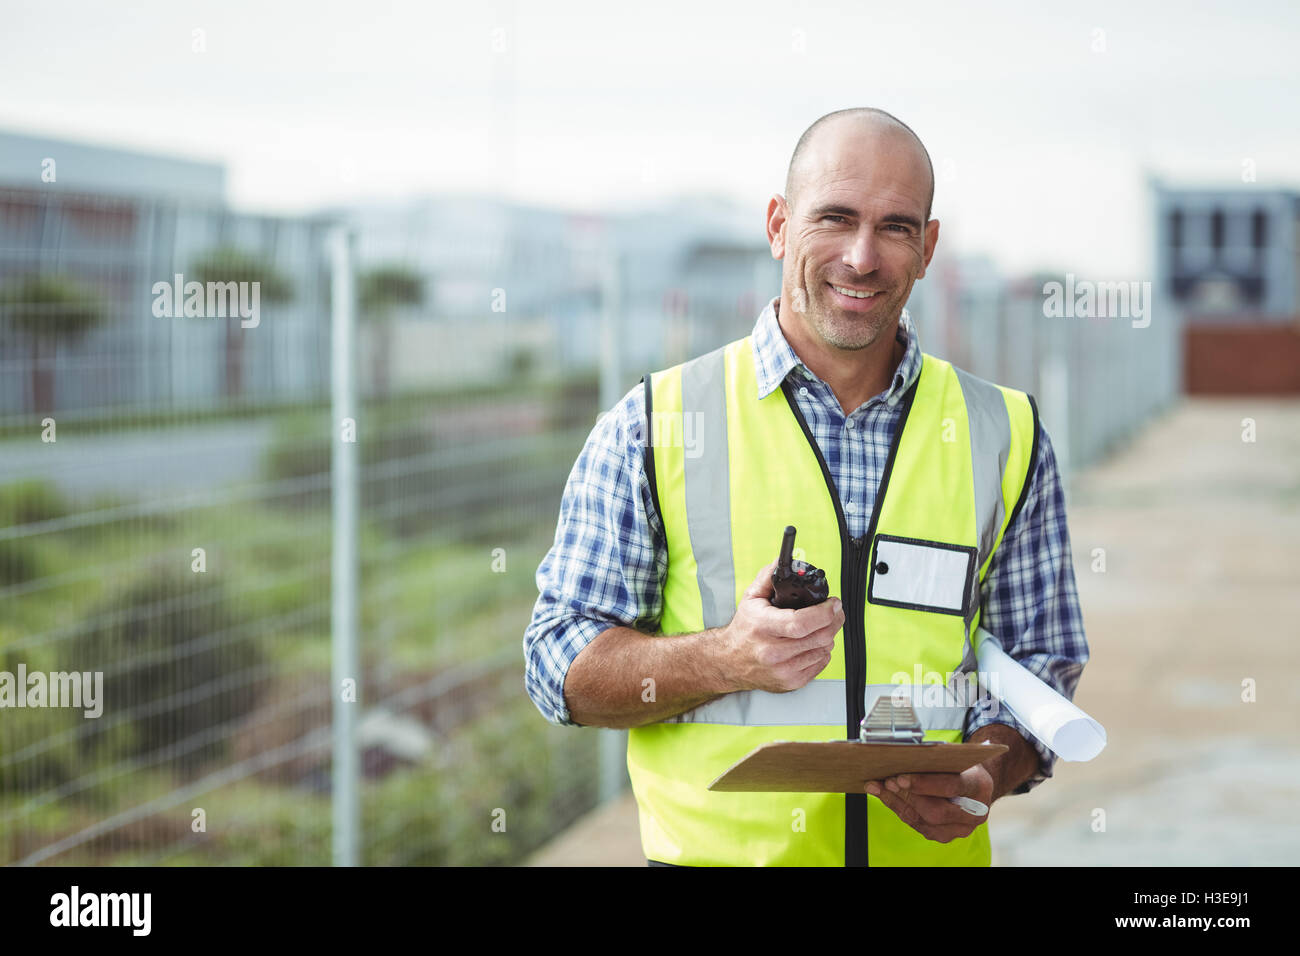 Construction worker holding walkie-talkie and clipboard - Stock Image